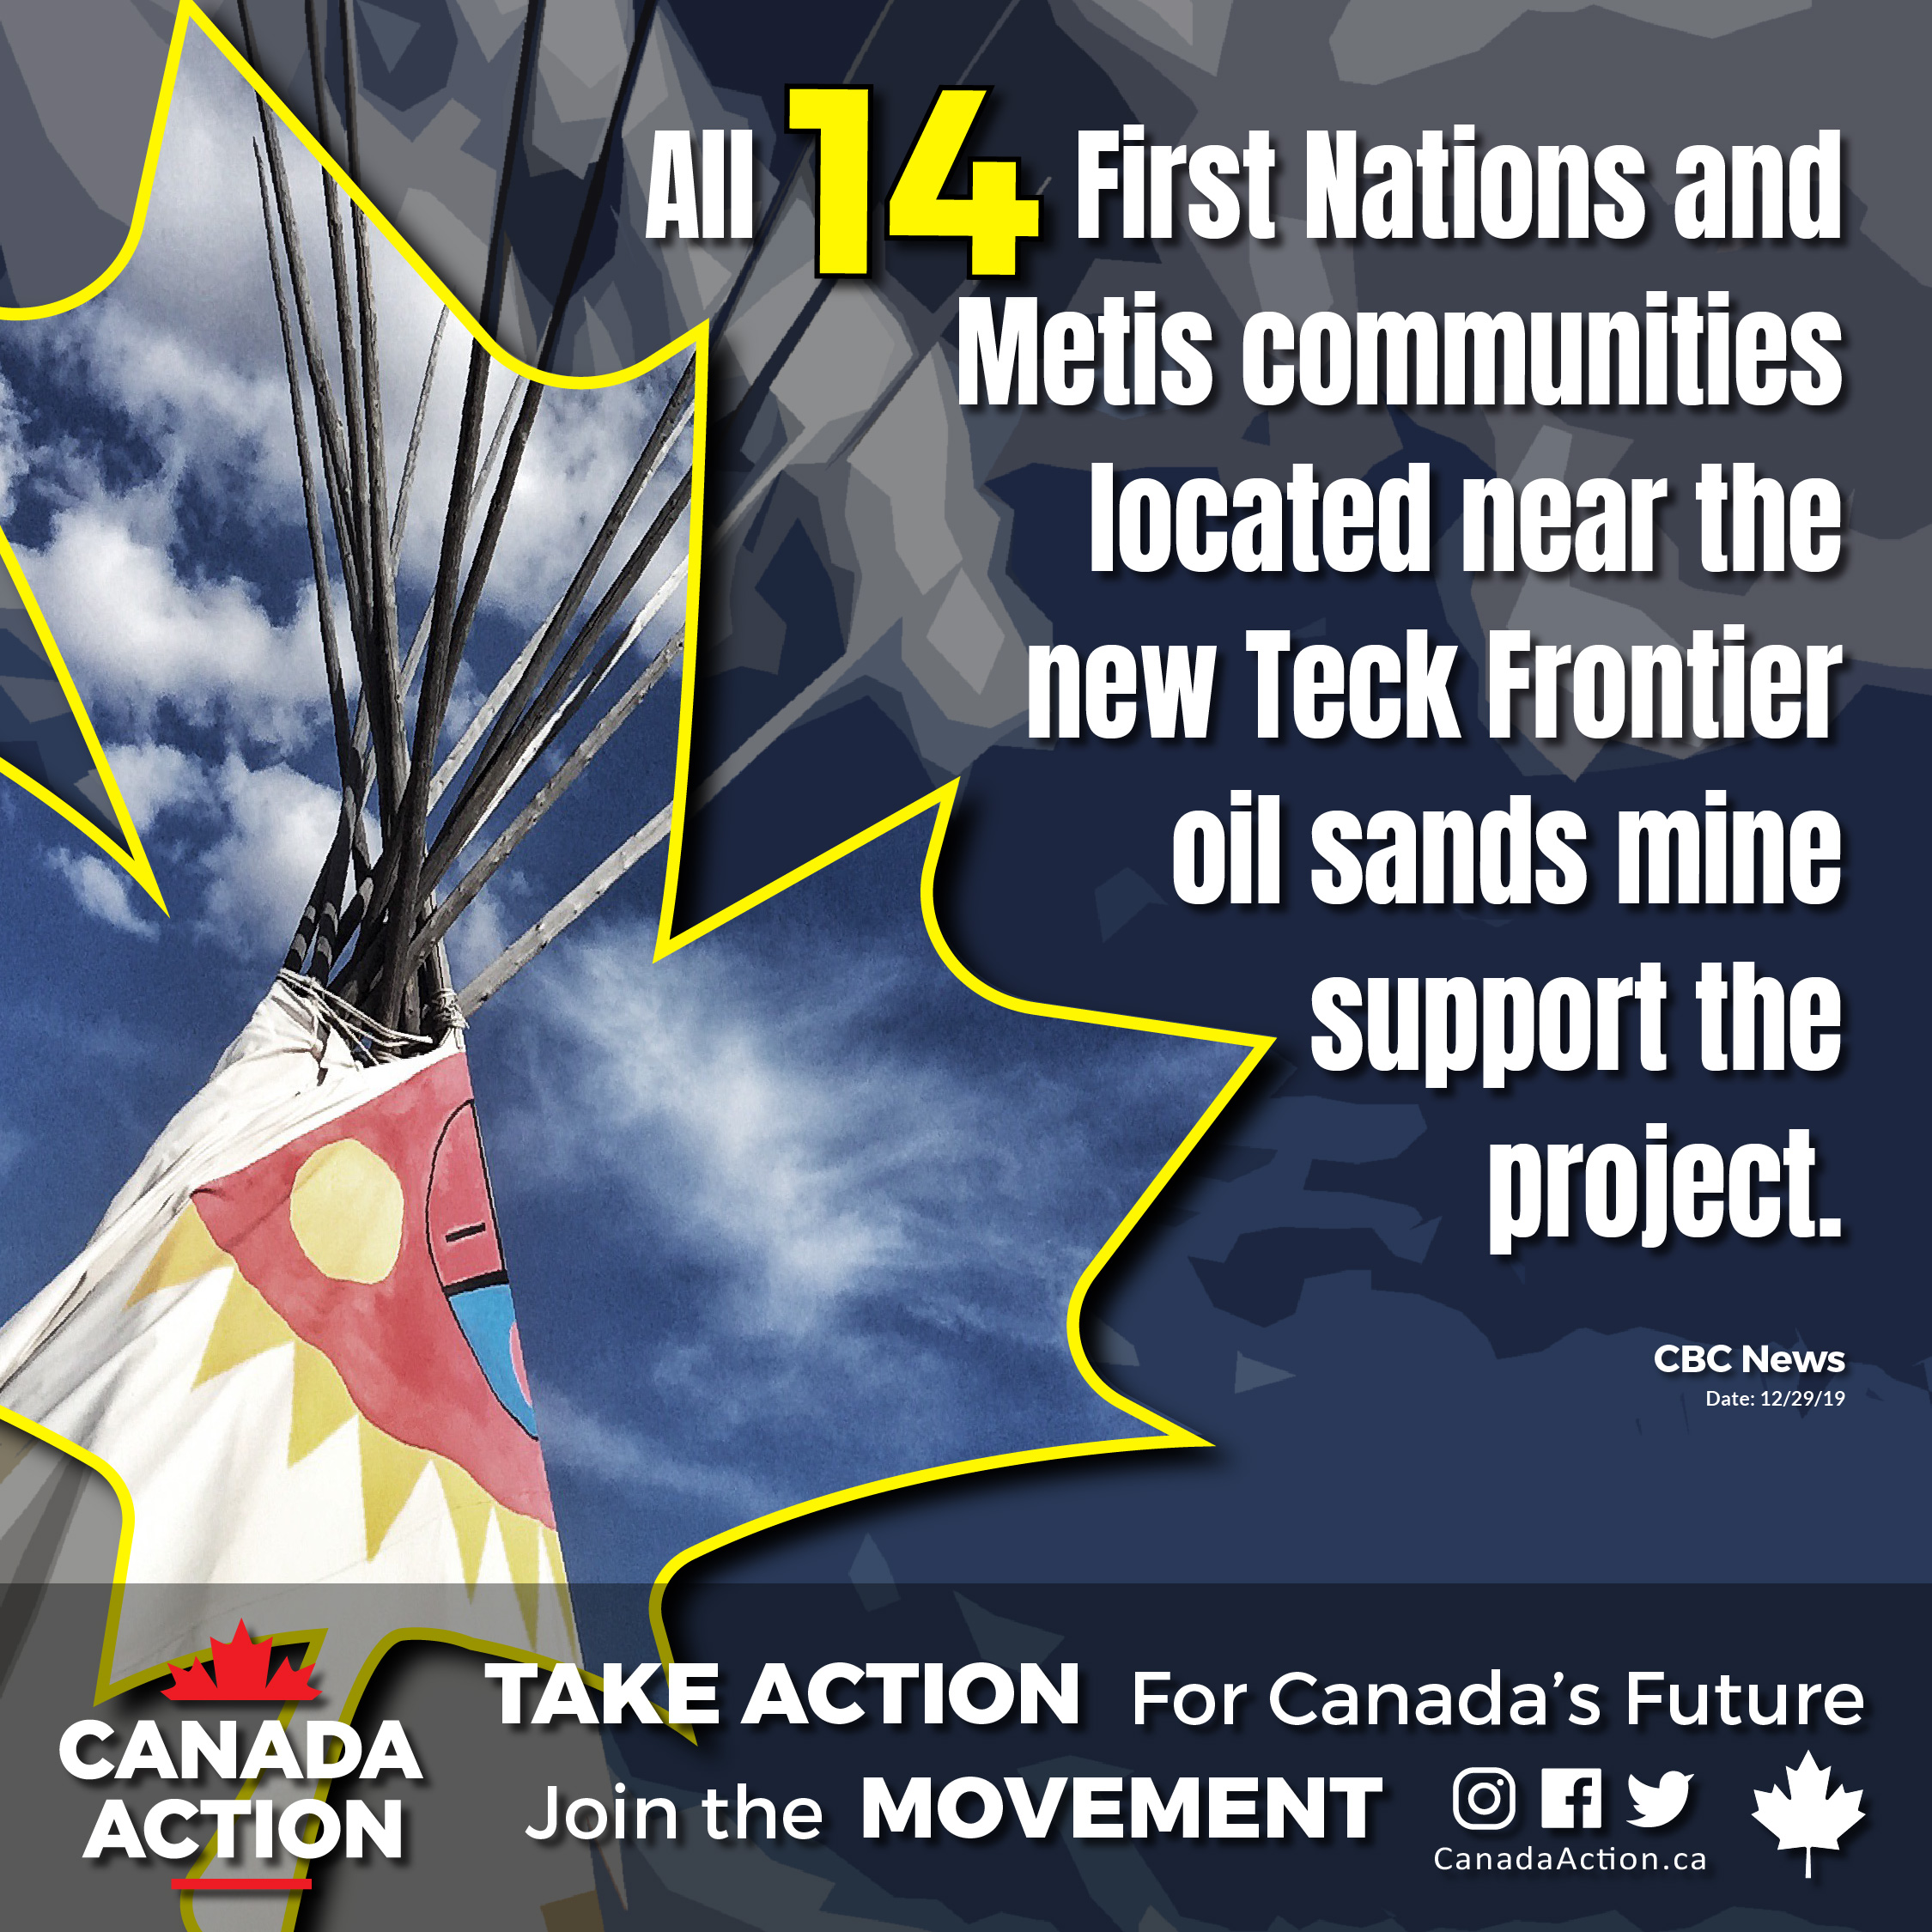 teck frontier project has support of all First Nations nearby